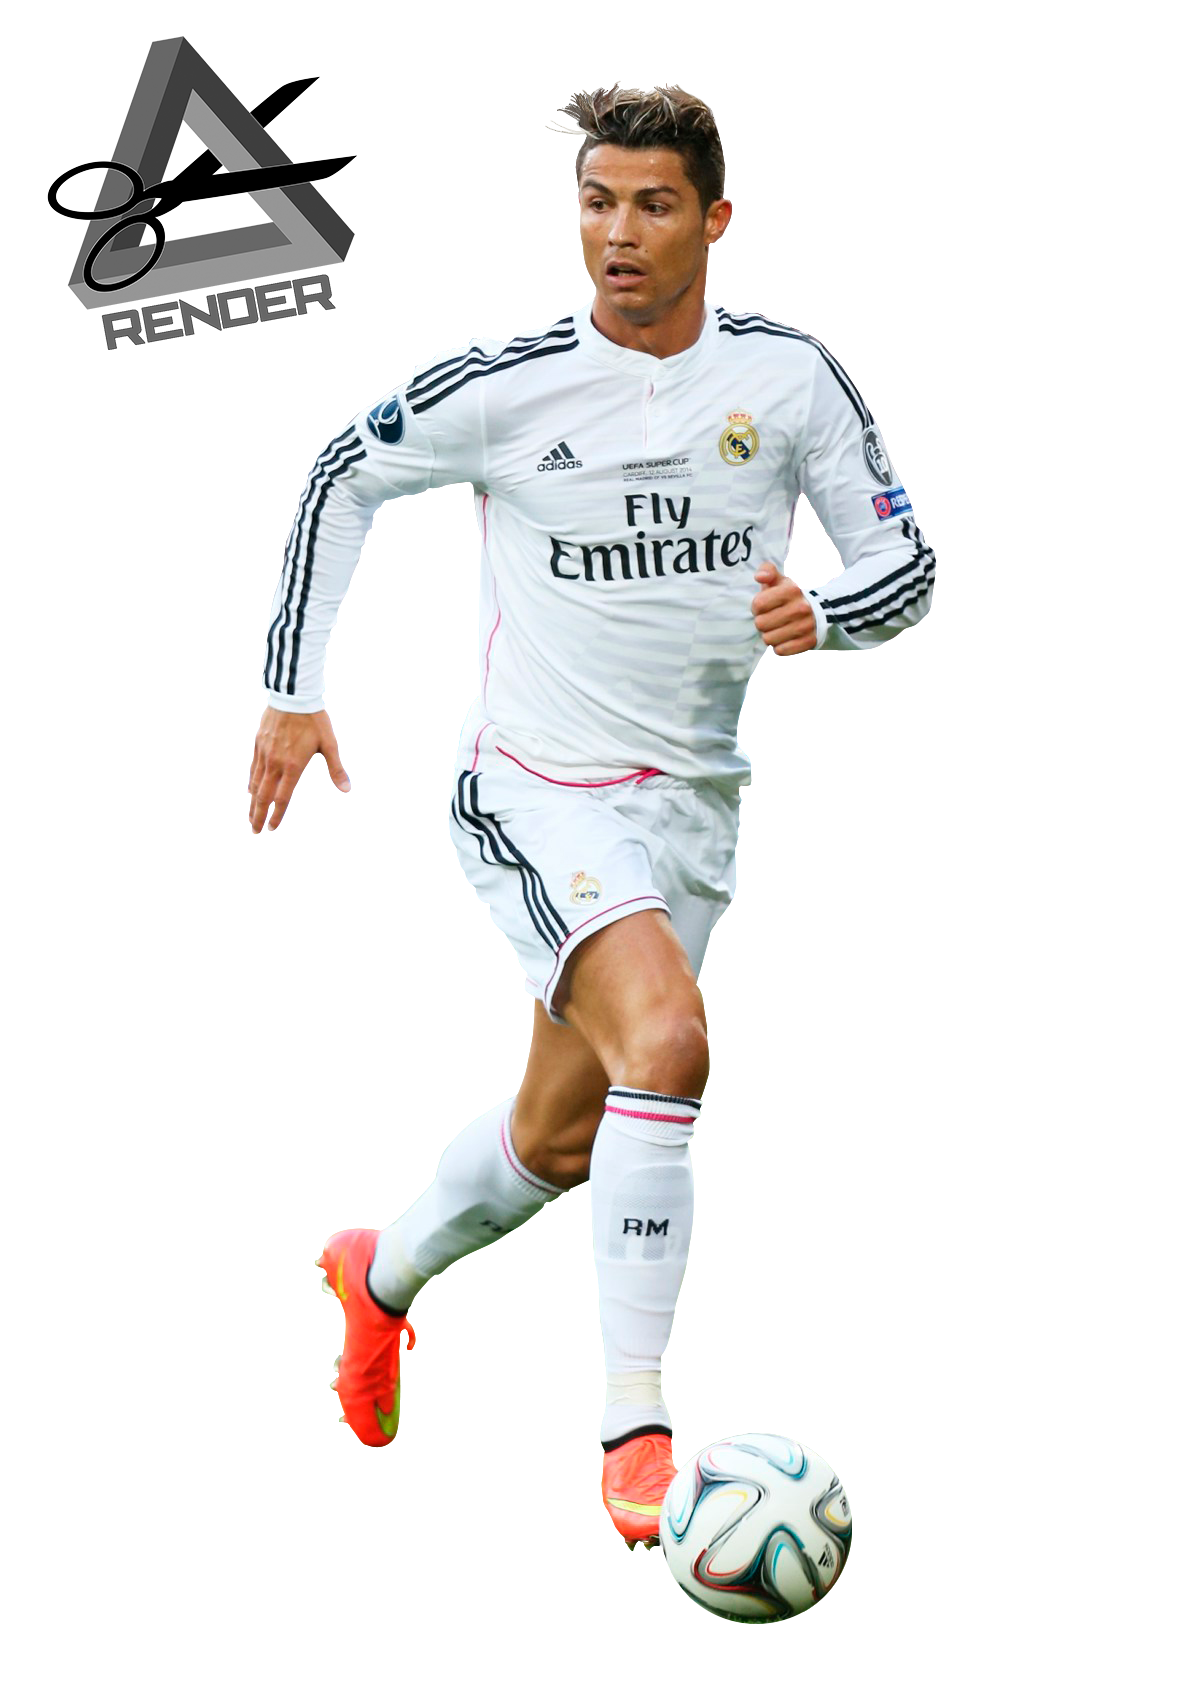 Real Madrid Cr7 2015 Hd Images Cristiano Ronaldo Wallpapers 1185x1703